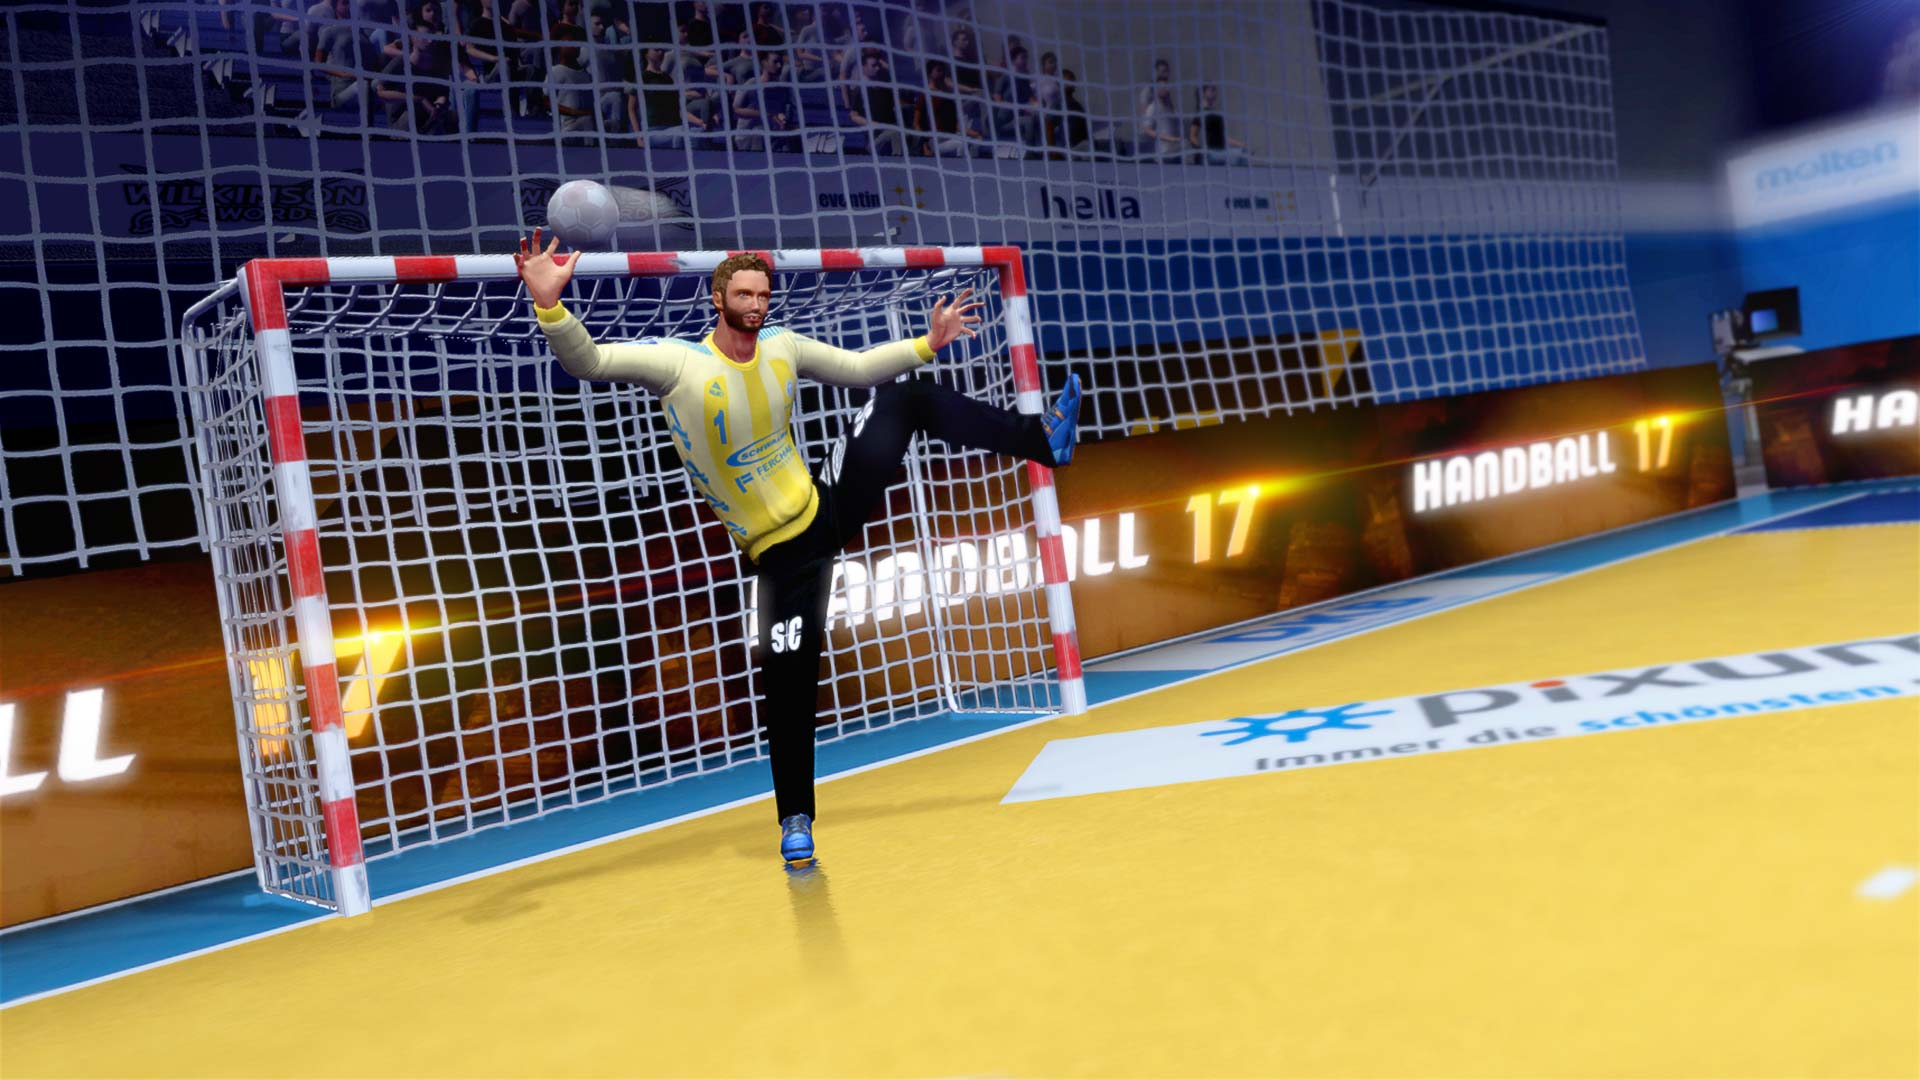 What's On Steam - Handball 17